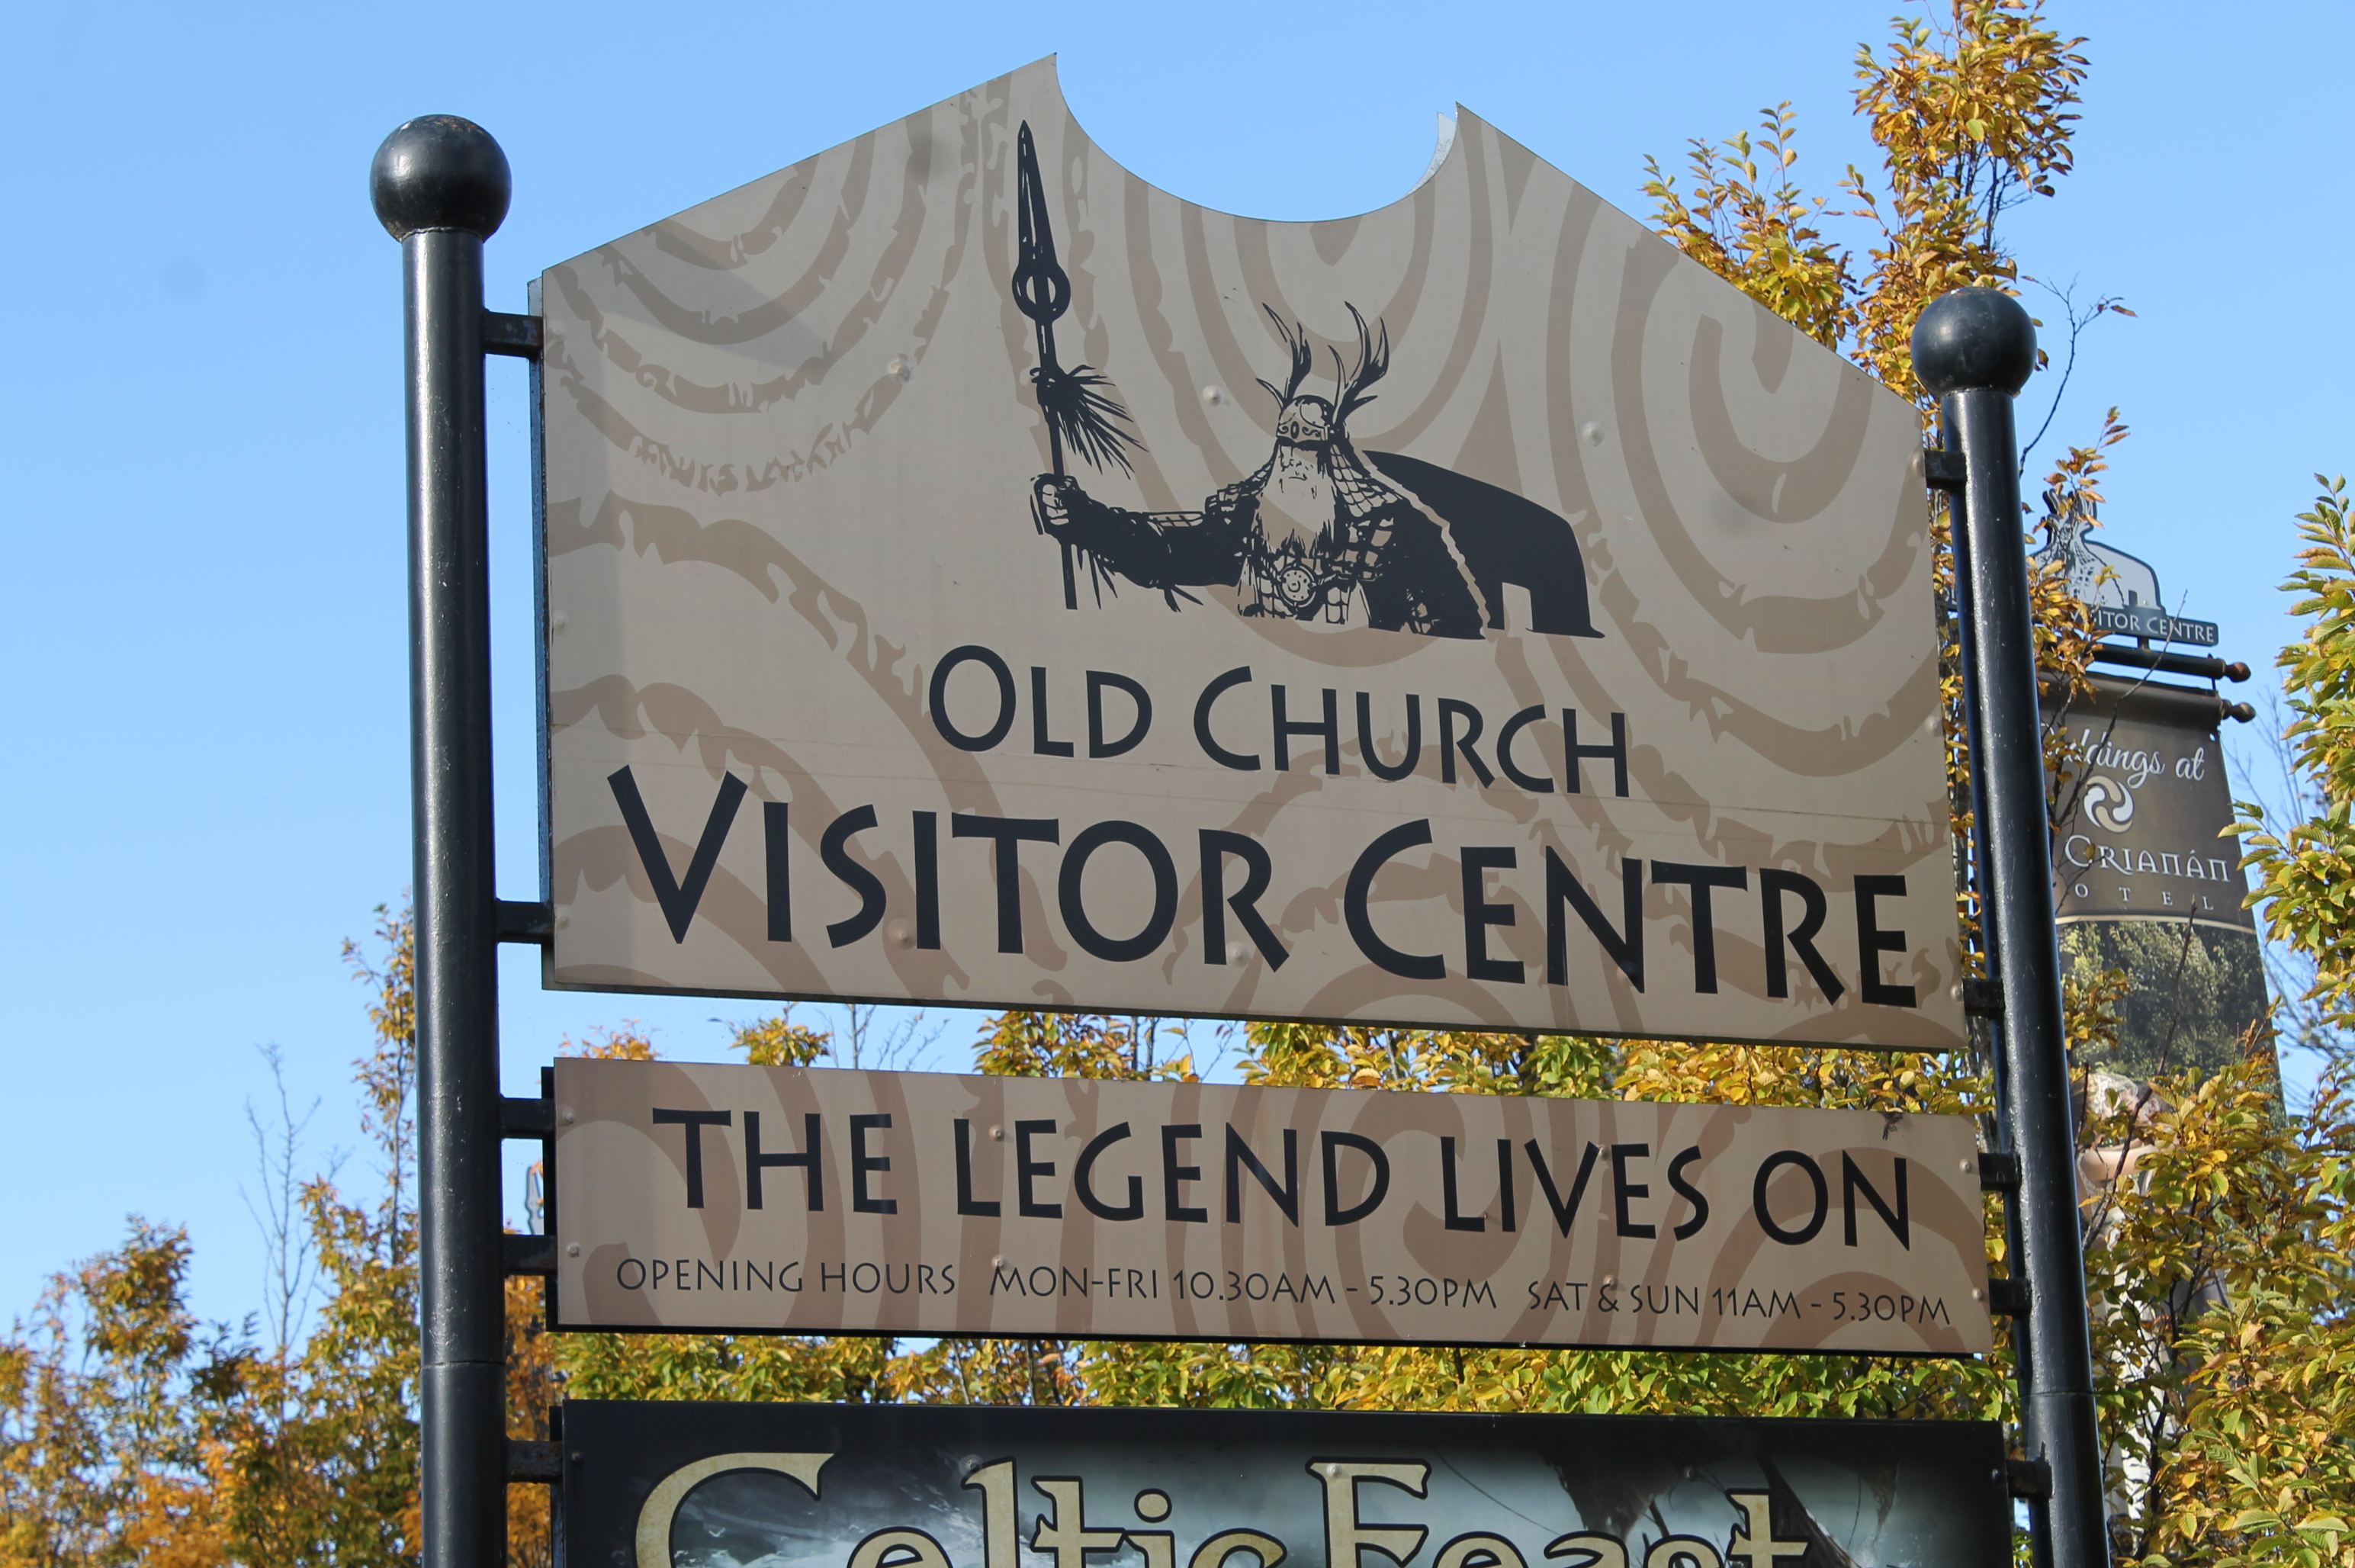 The Old Church Visitor Centre